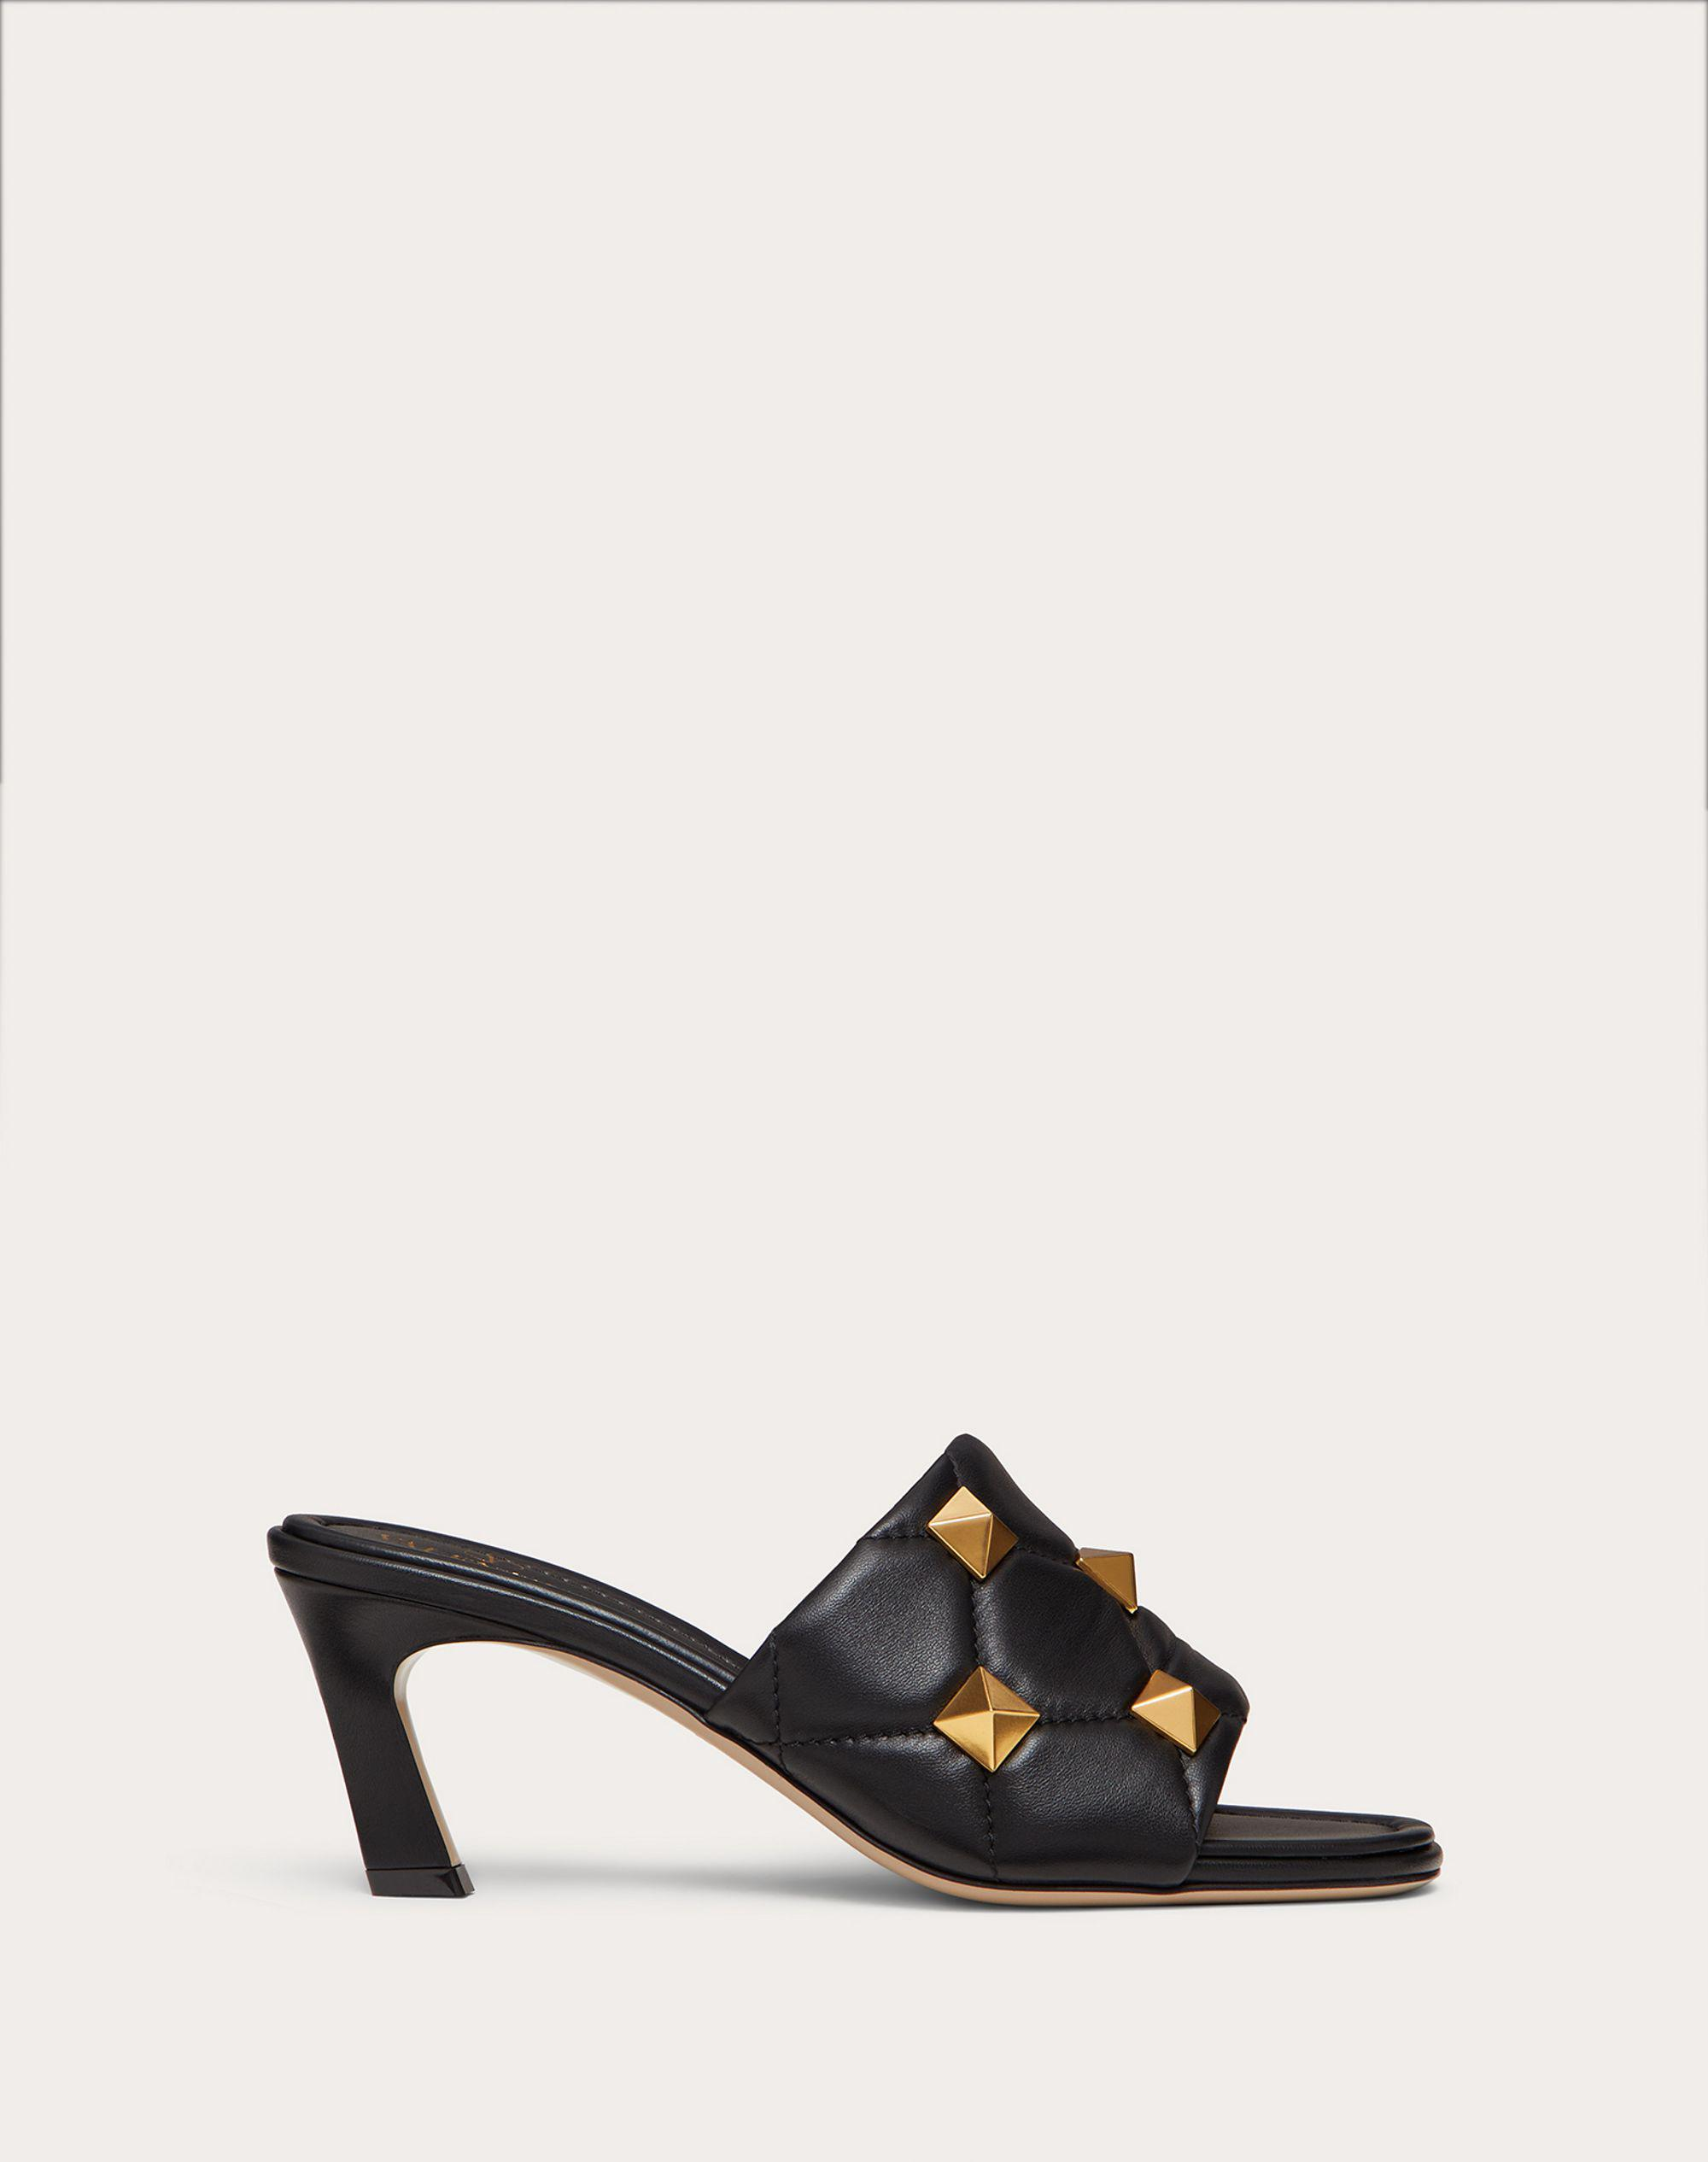 ROMAN STUD SLIDE SANDAL IN QUILTED NAPPA 65 MM